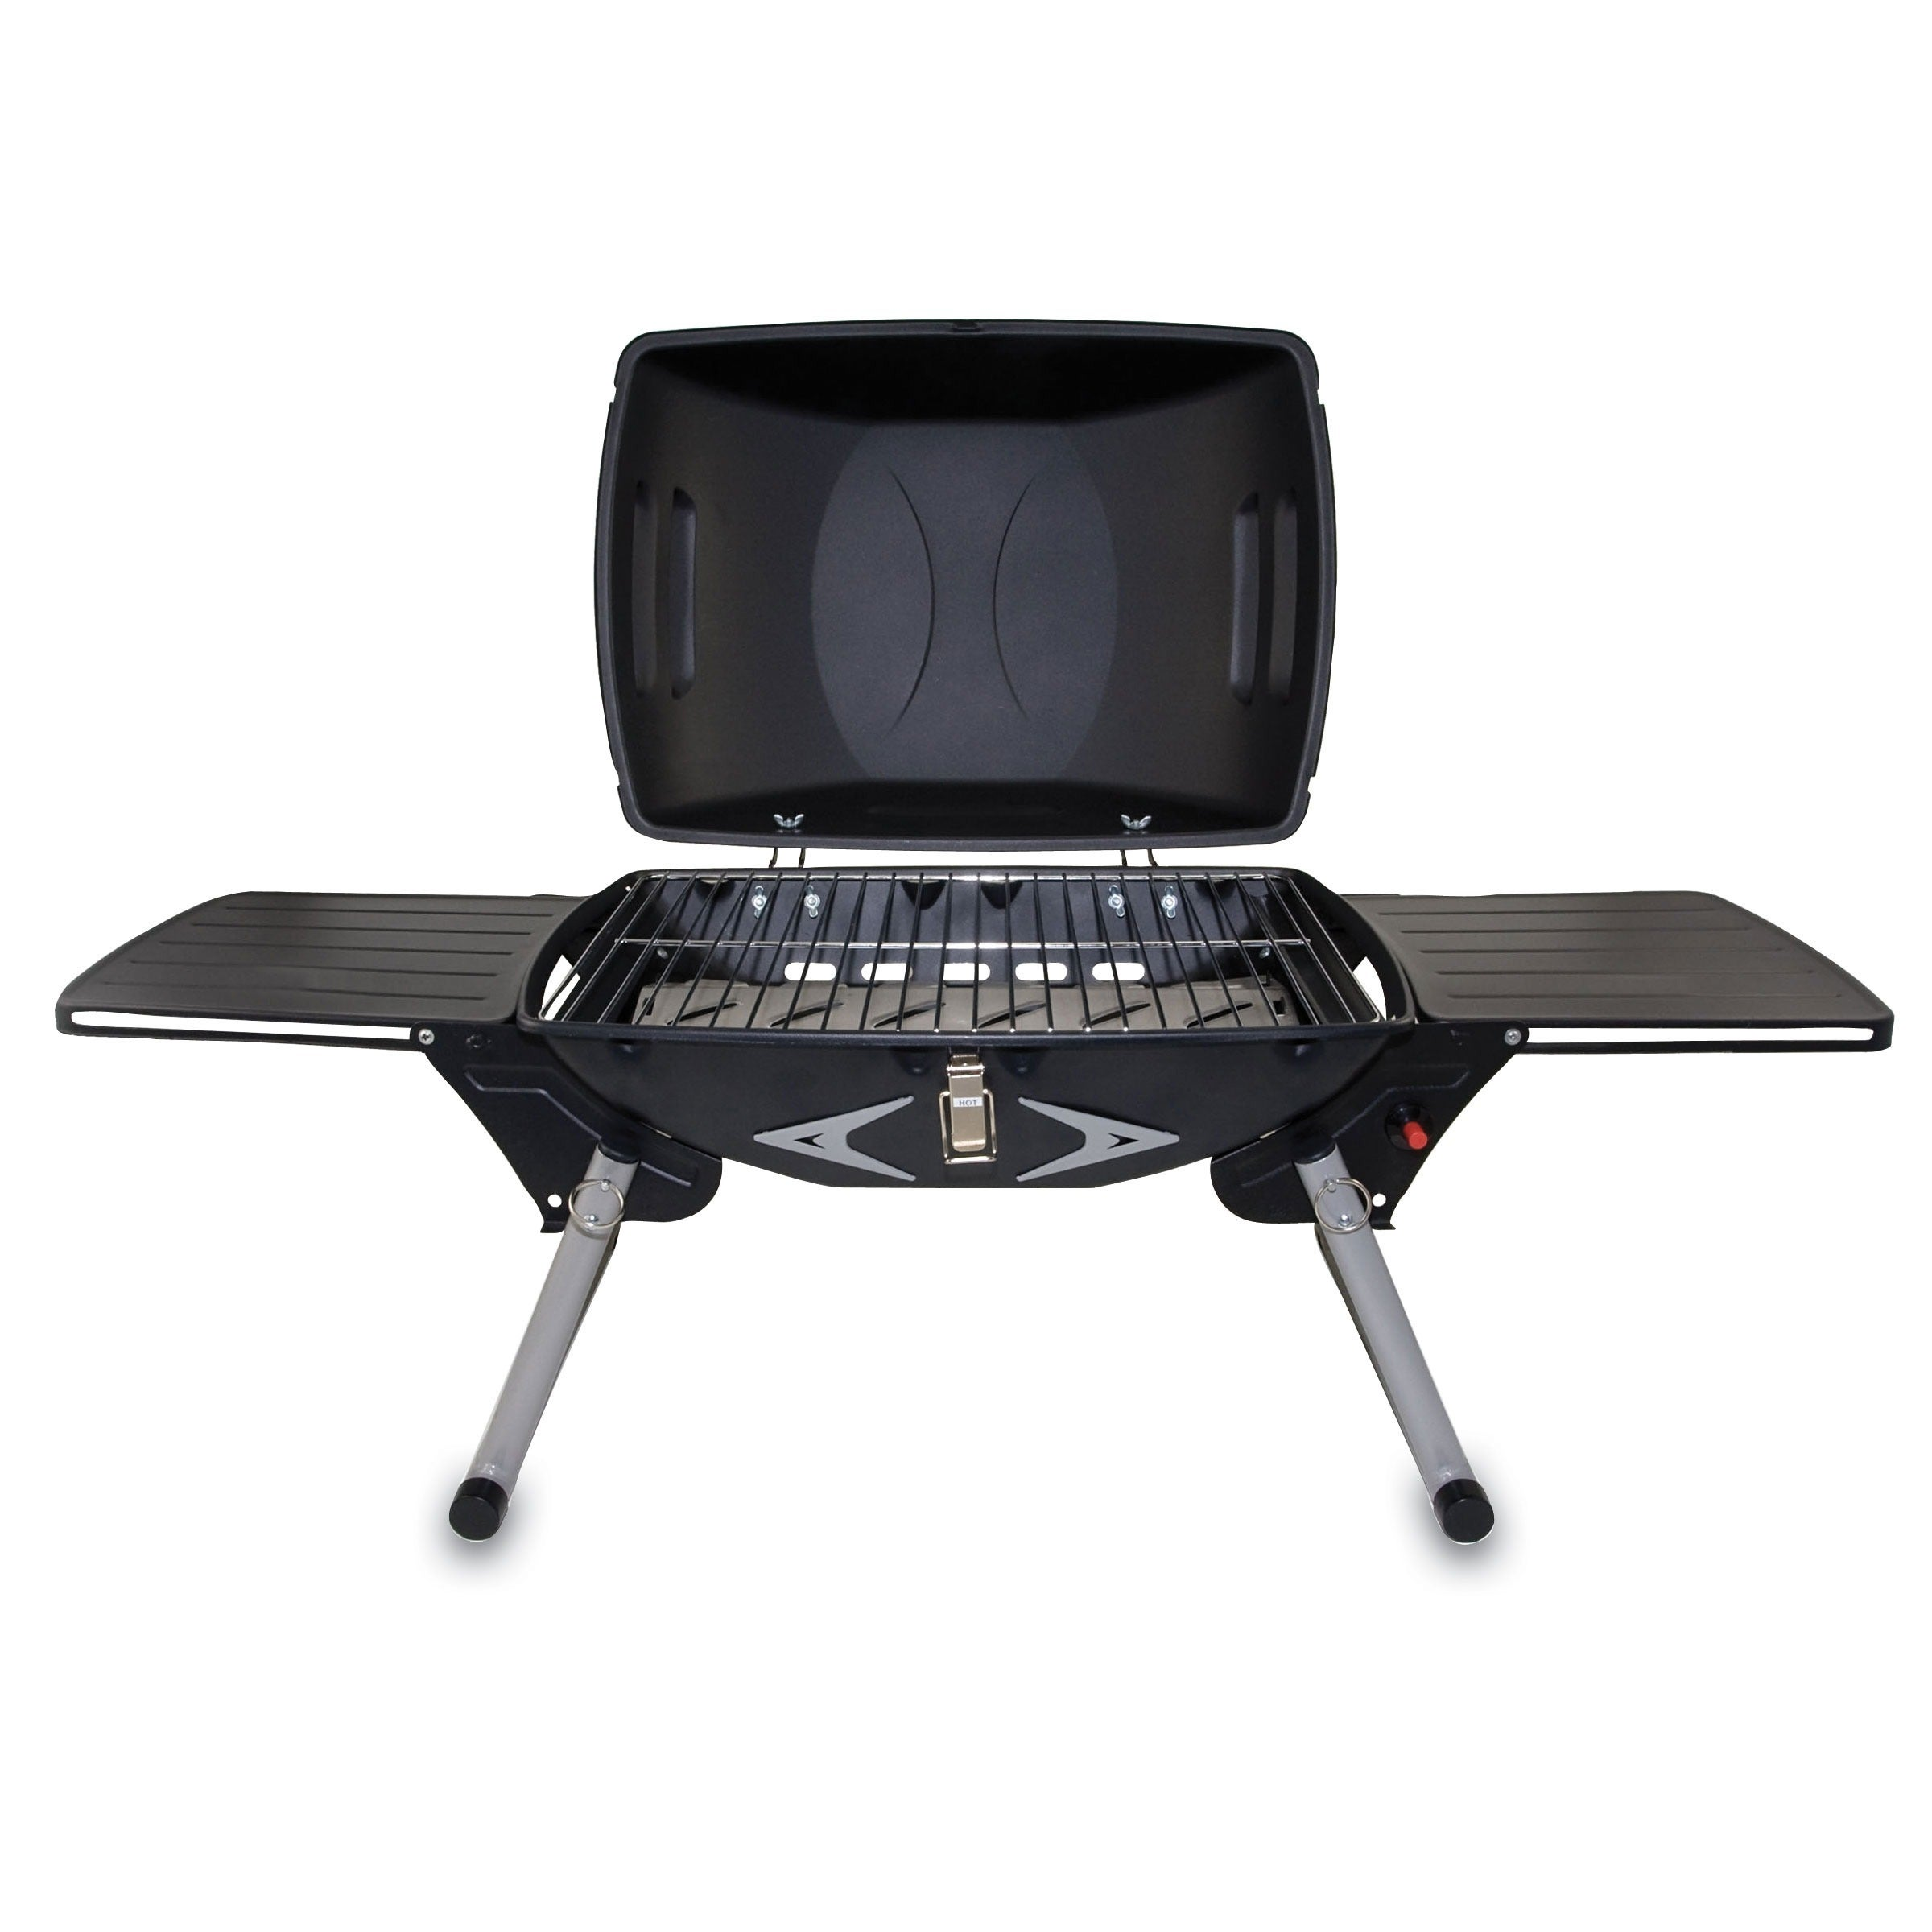 Picnic Time Portagrillo Portable Gas BBQ Grill   Free Shipping Today    Overstock   12220924